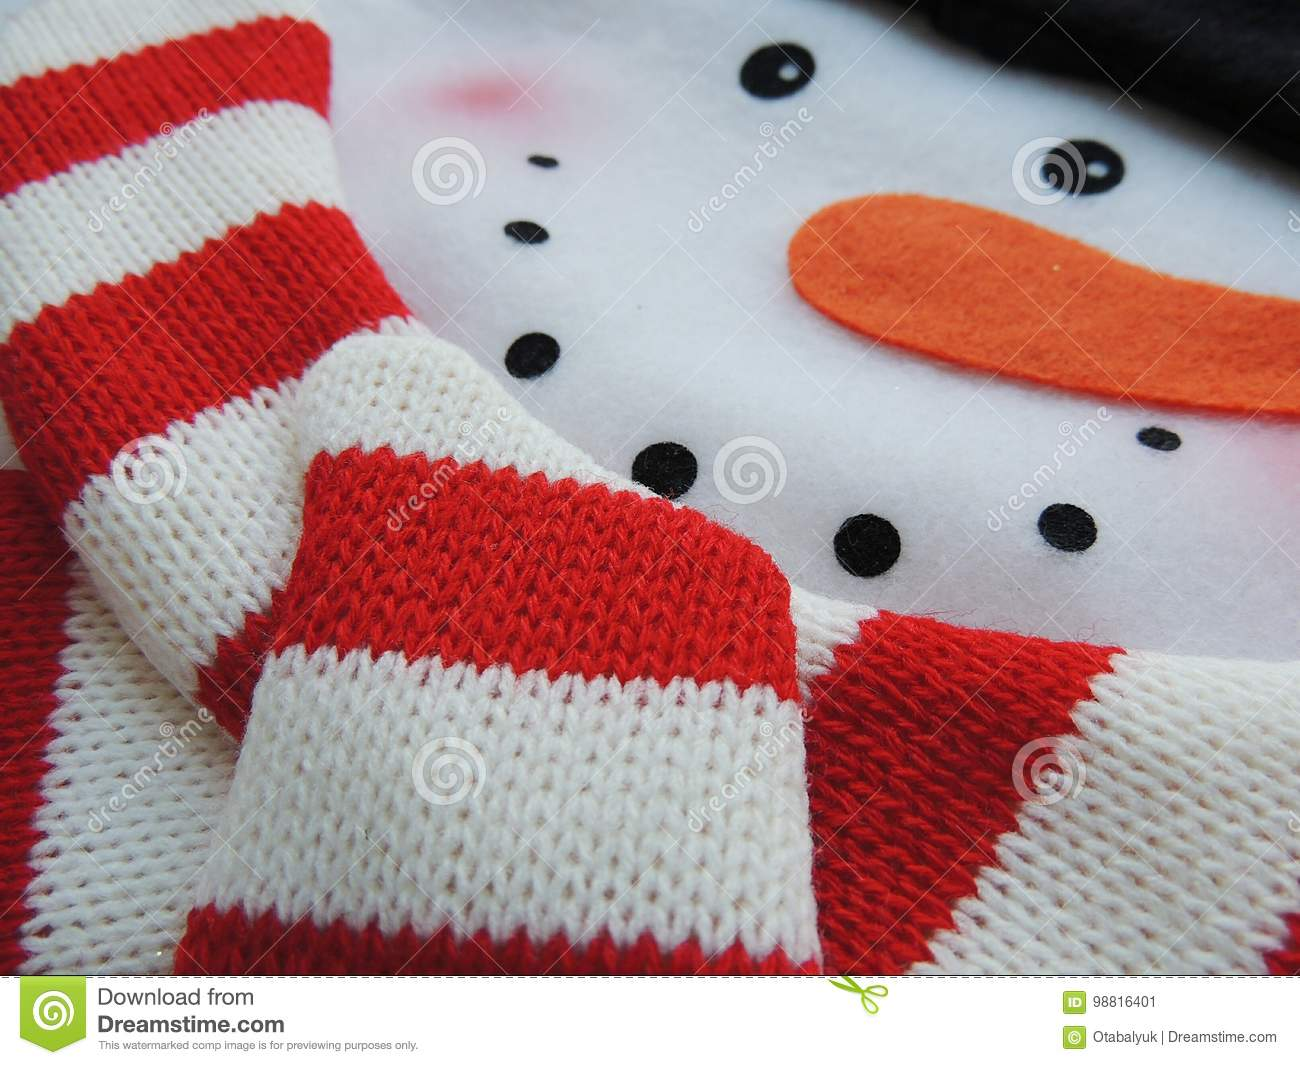 Felt Snowman With Knitted Scarf For Christmas Holidays. Stock Image ...